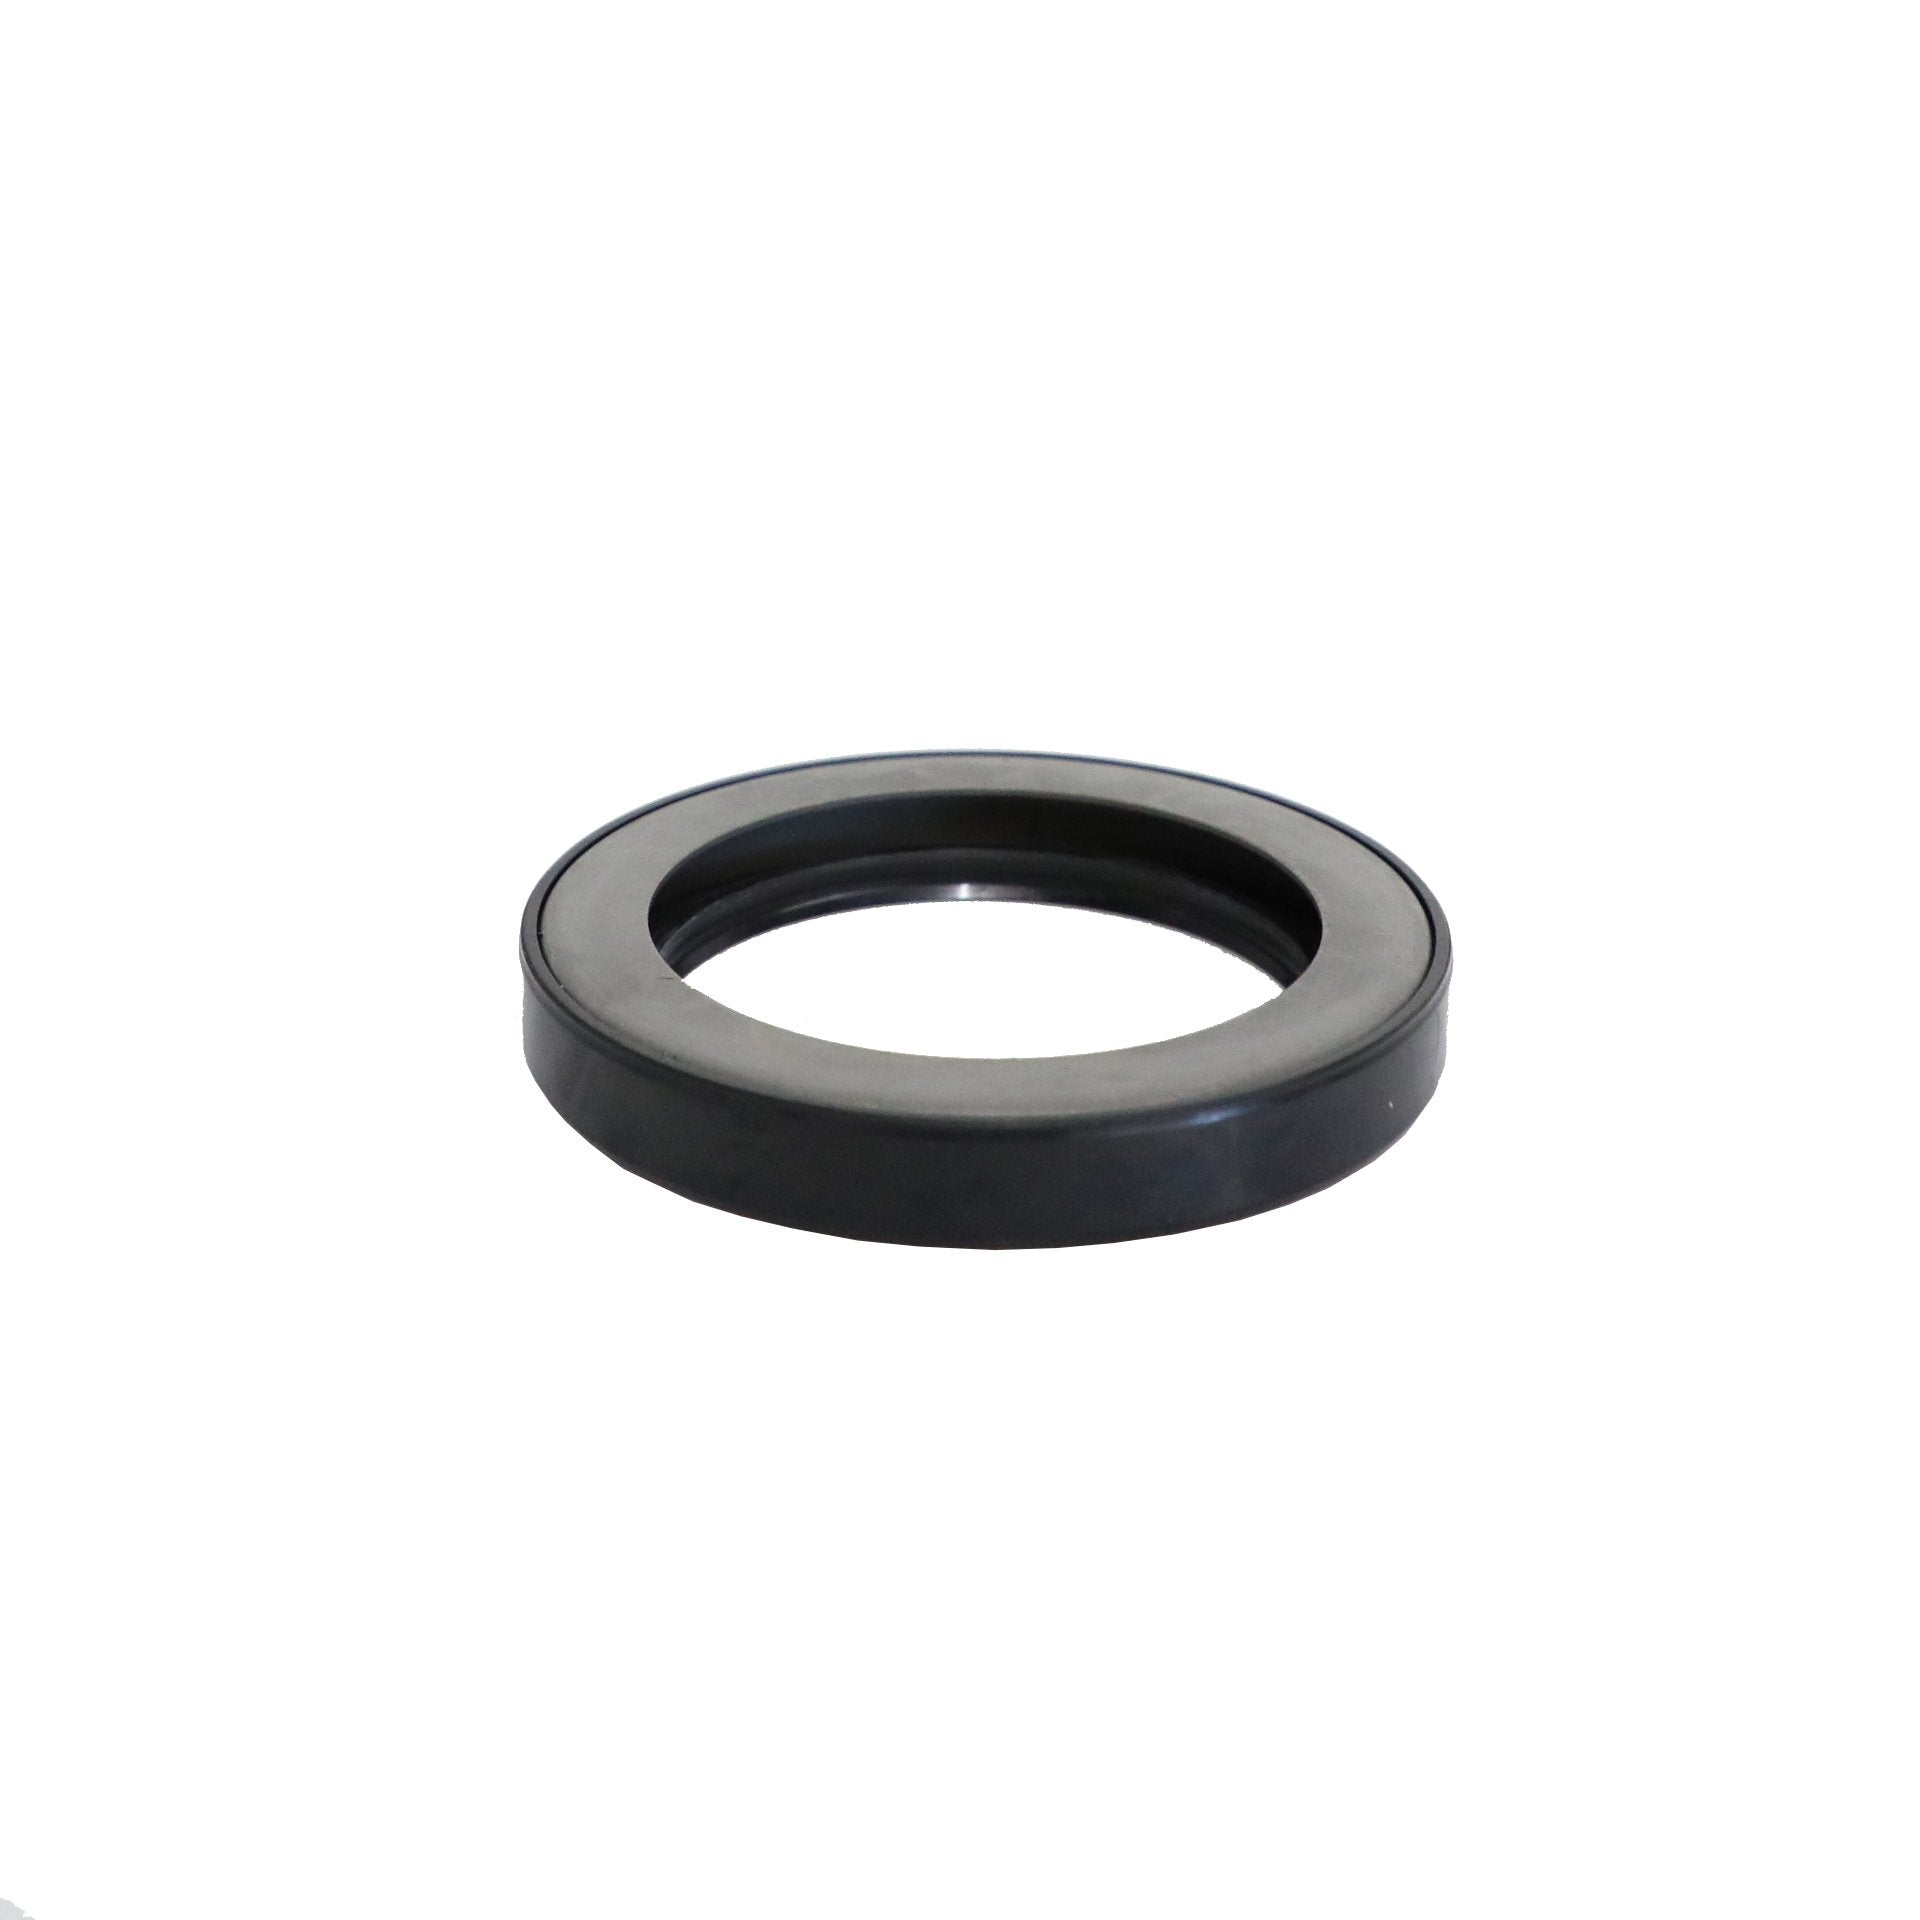 Oil Seal SKU: 43090-00H00